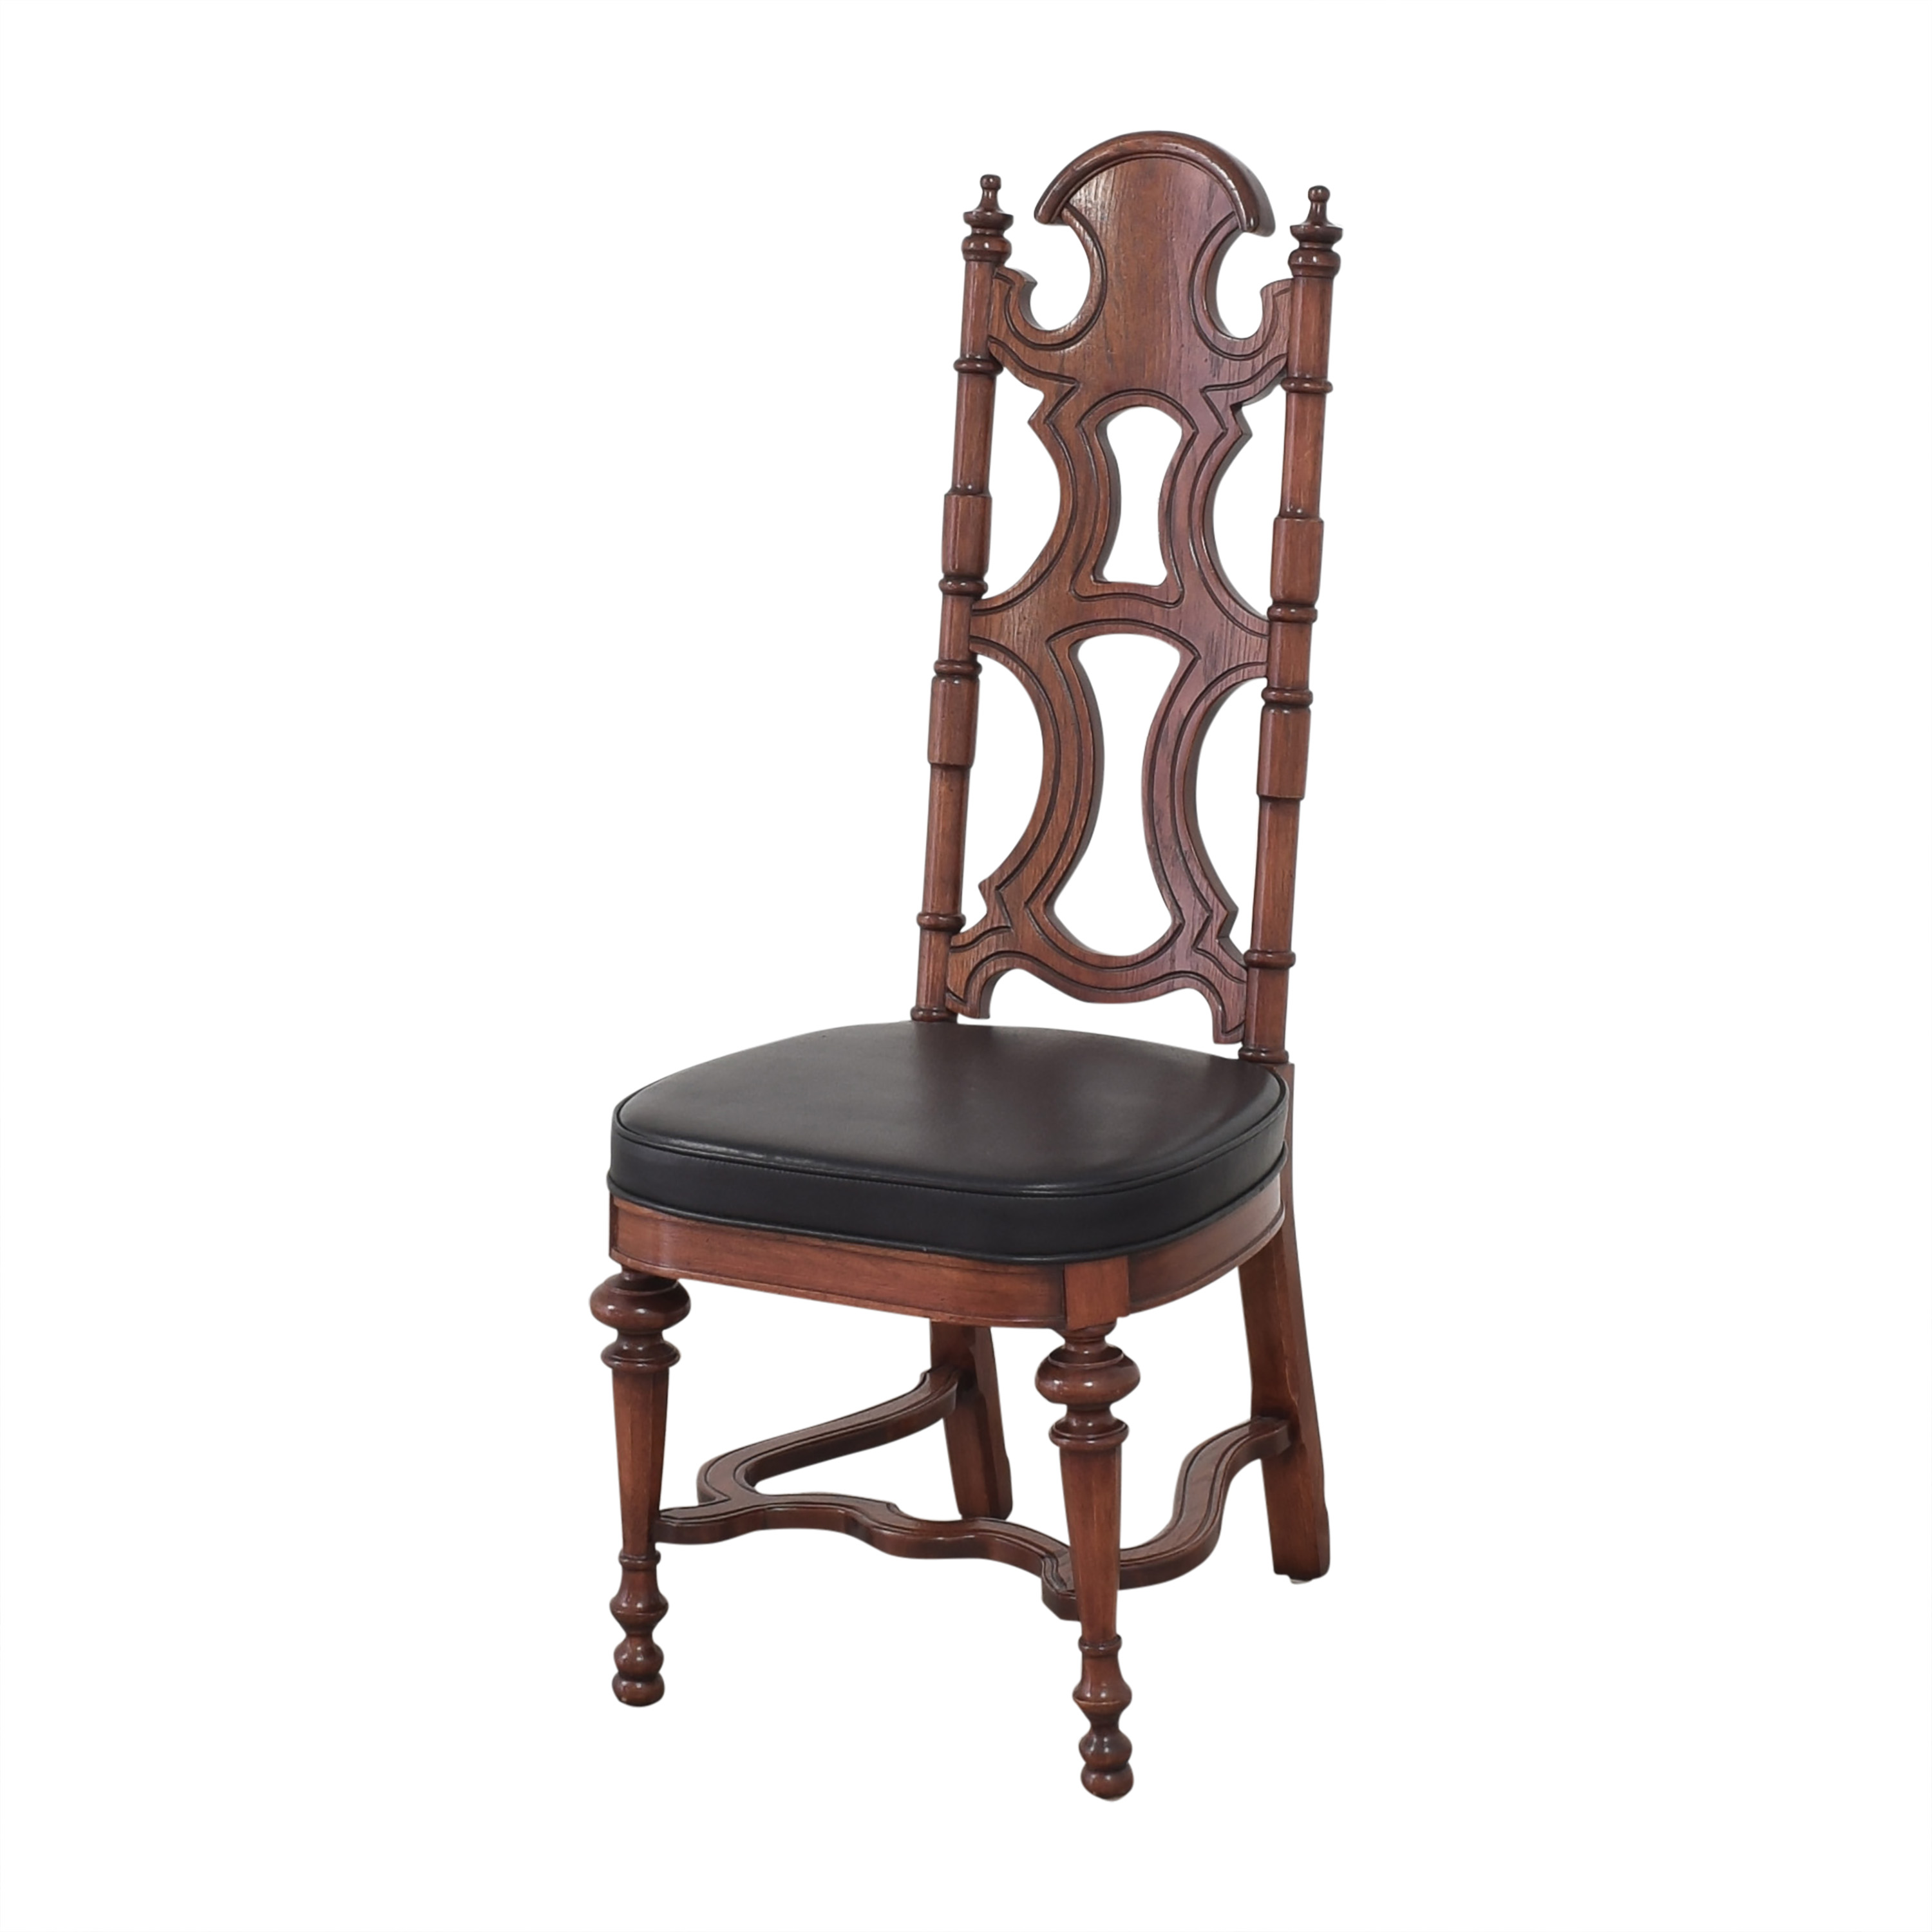 Drexel Drexel High Back Dining Chairs nyc